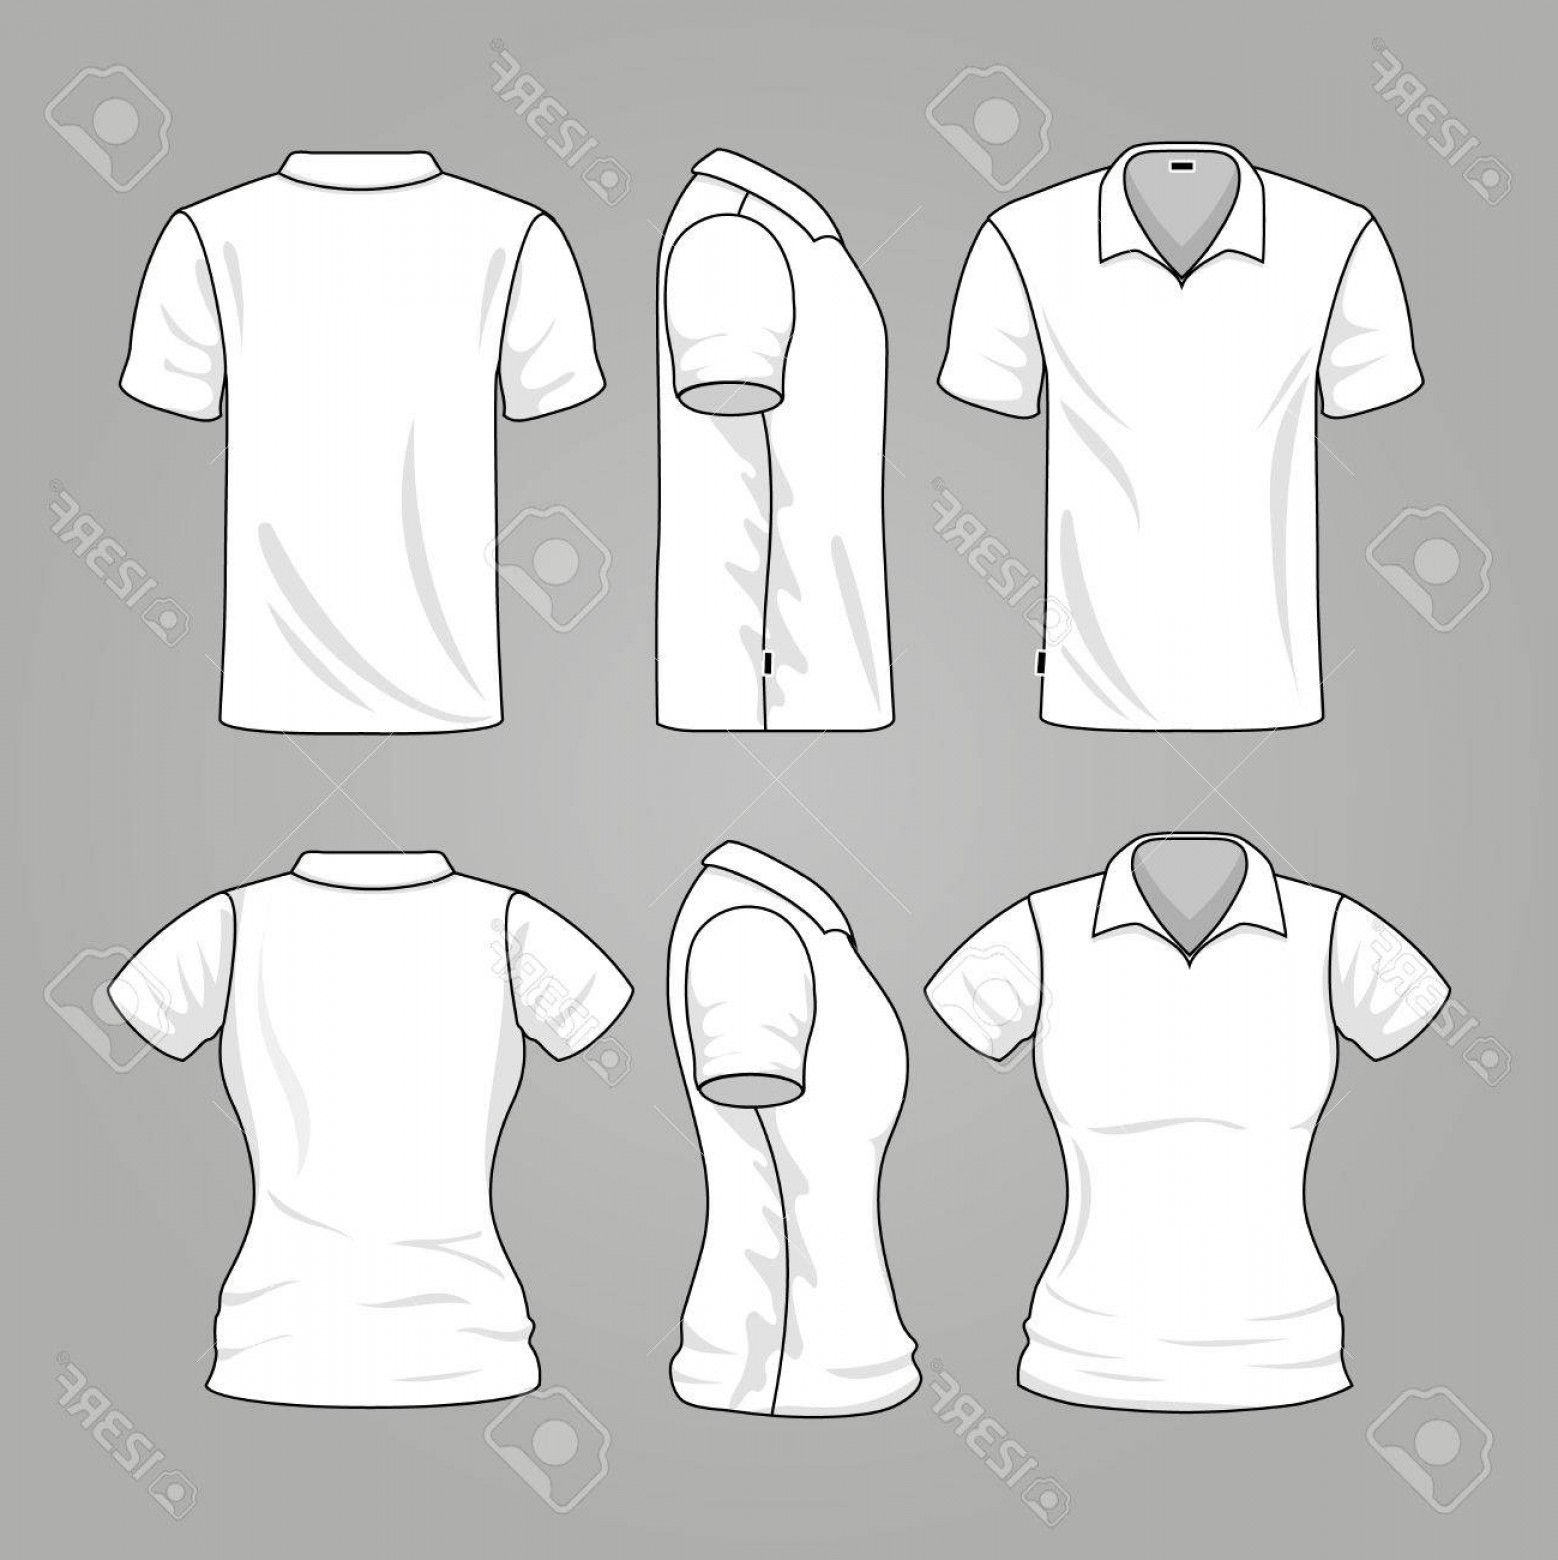 Men's T-Shirt Vector Template: Photostock Vector Blank White Mens And Womens T Shirt Outline Vector Template Of T Shirt For Woman And Man Illustratio